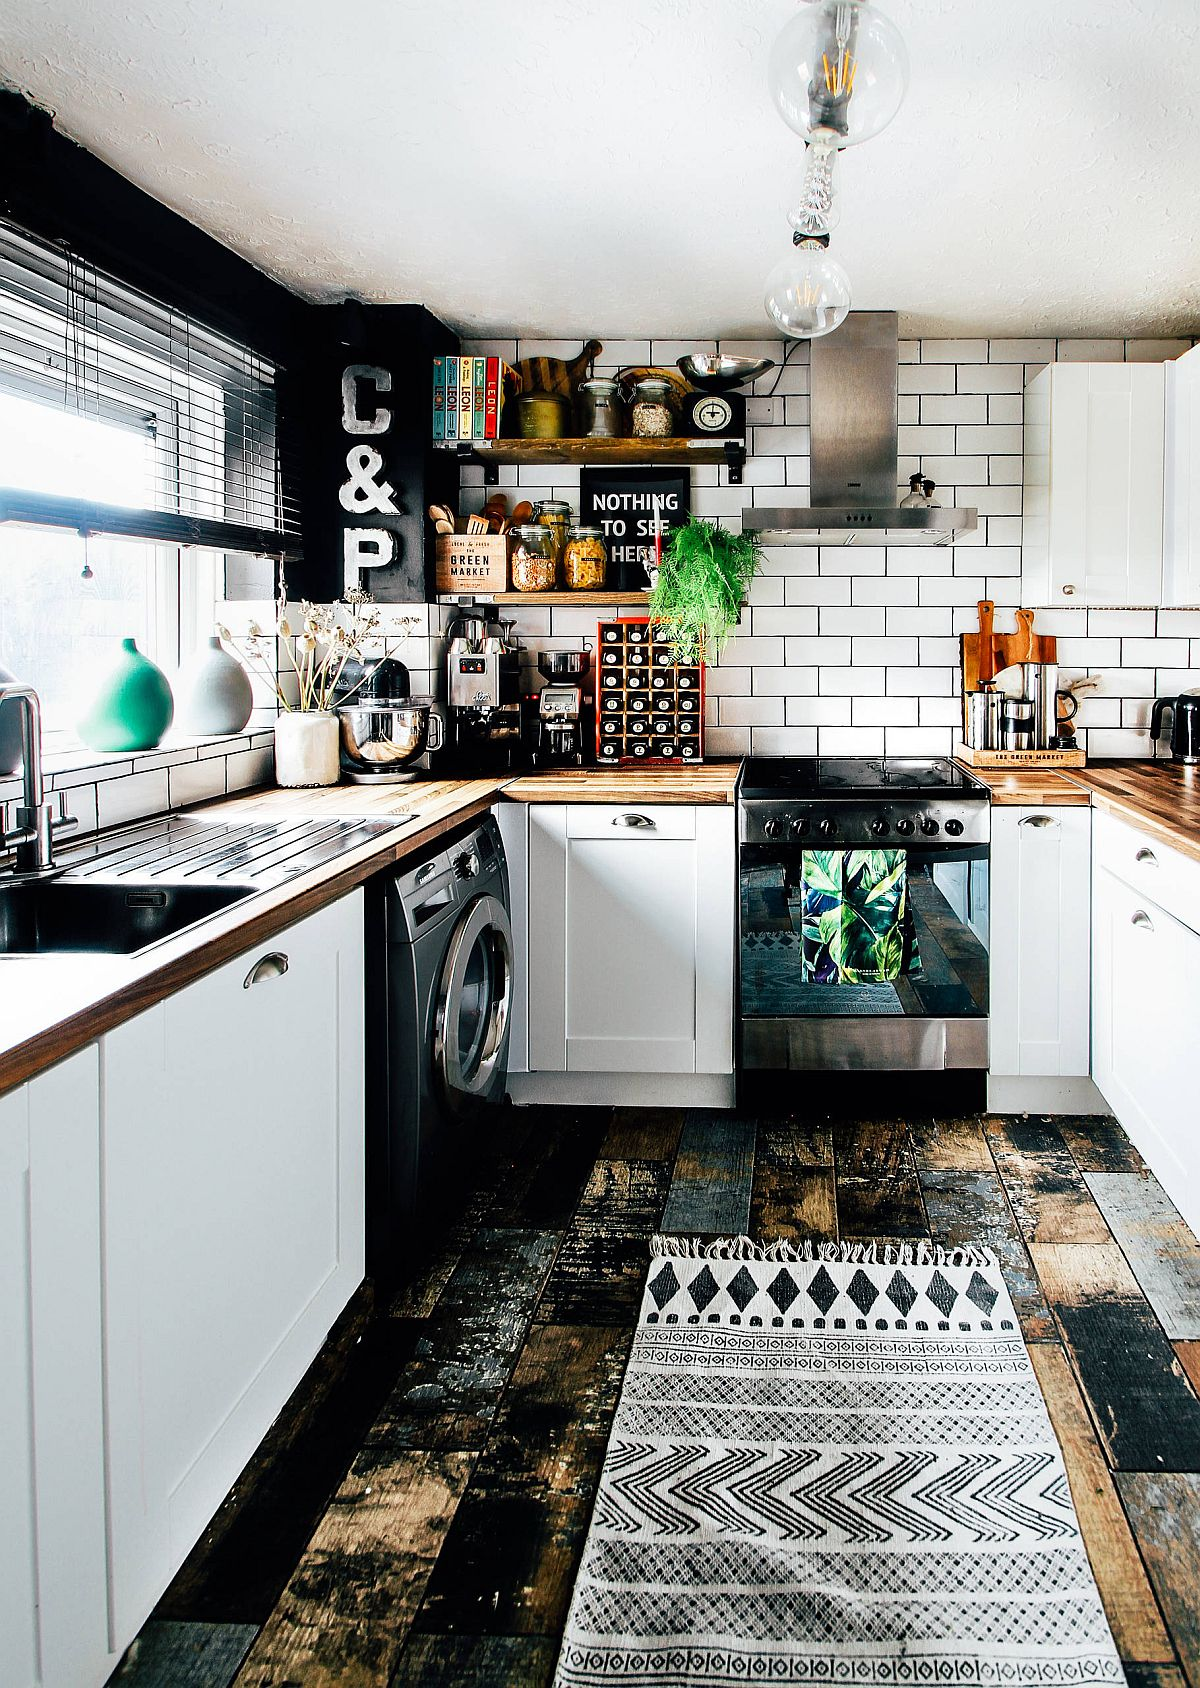 Reclaimed-wood-floor-and-white-cabinets-combined-elegnatly-in-this-small-eclectic-kitchen-37269